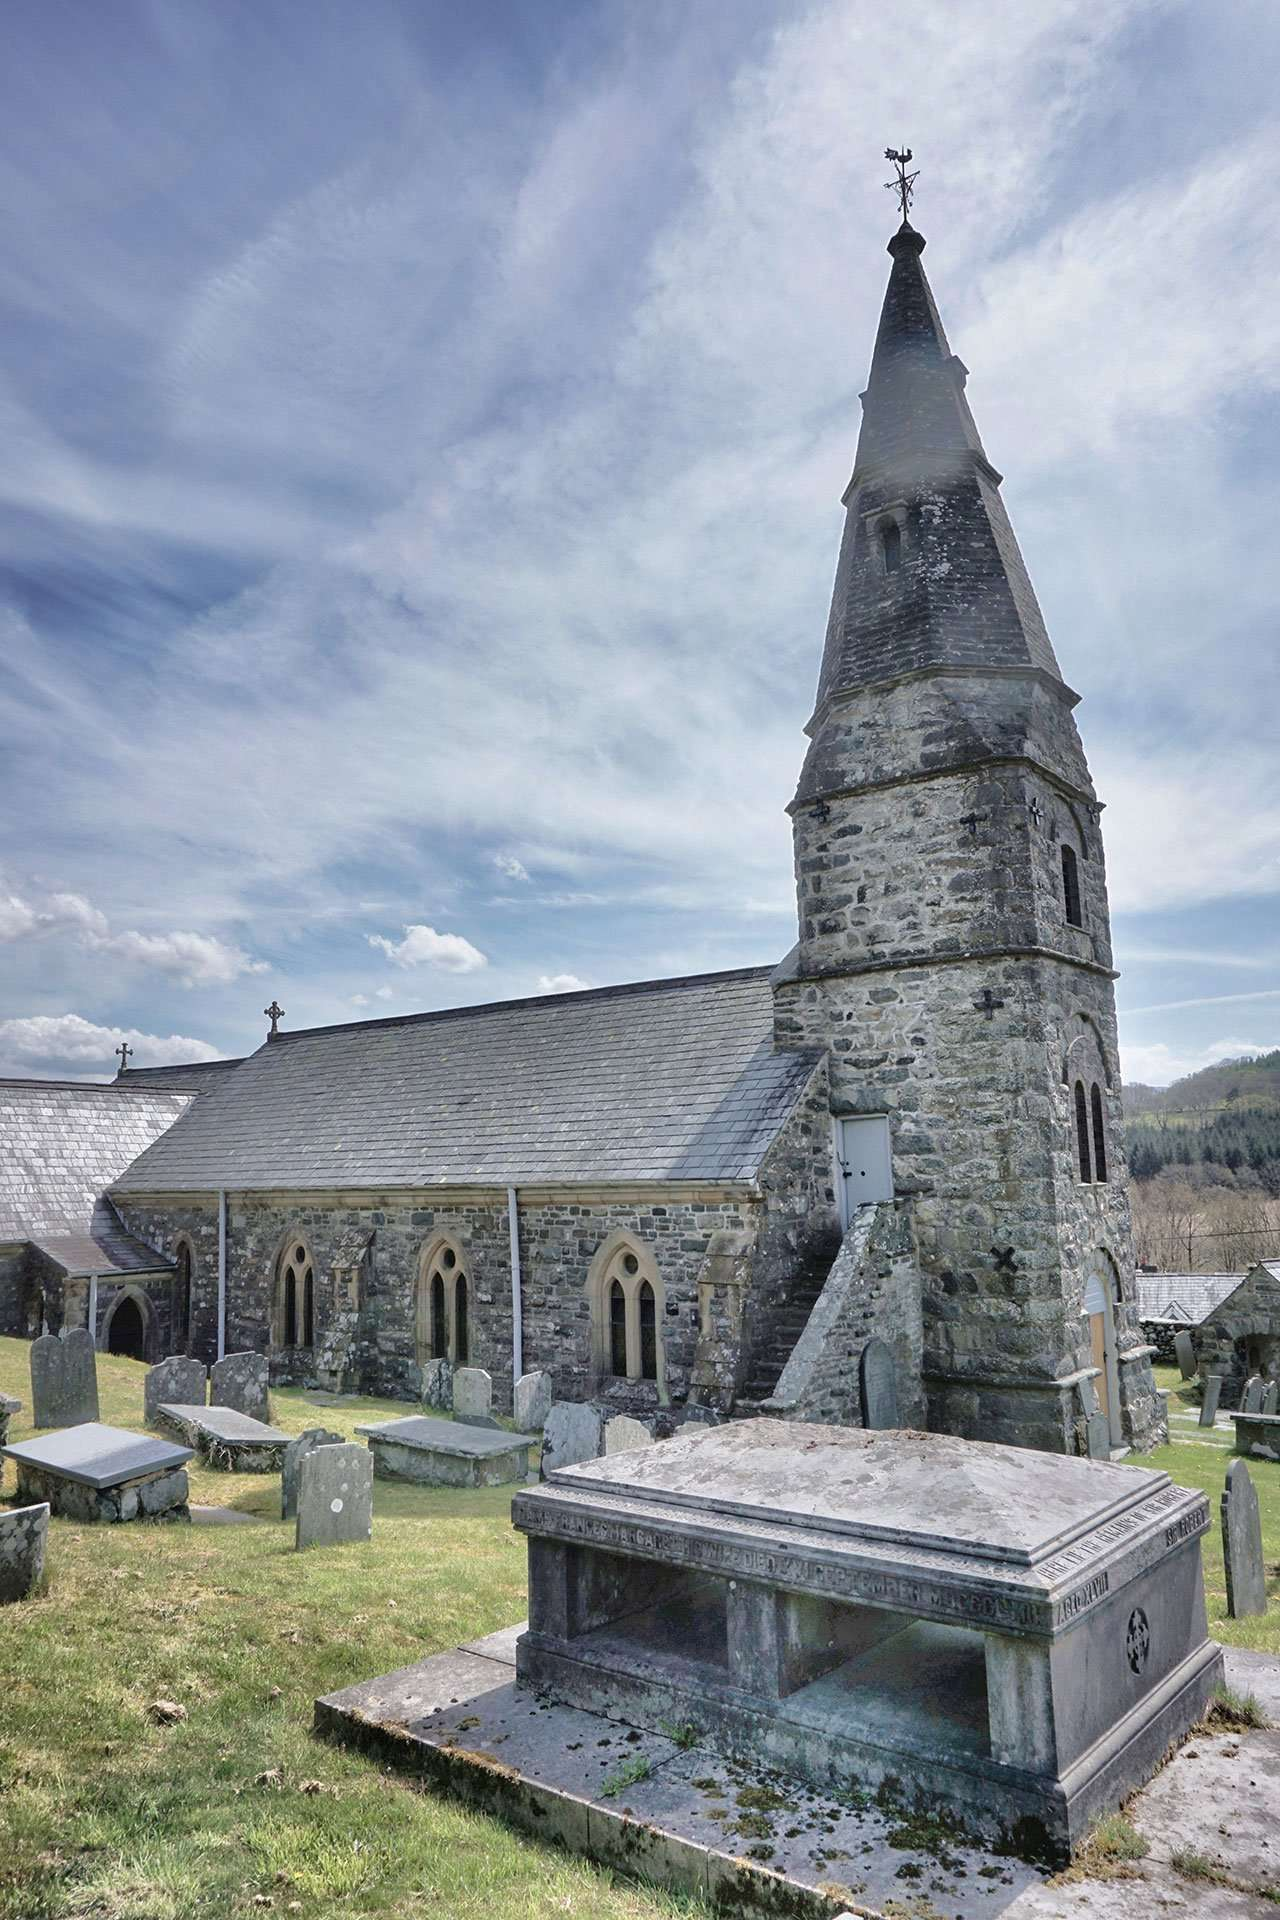 The Vaughan Vault and St. Machreth Church in Llanfachreth